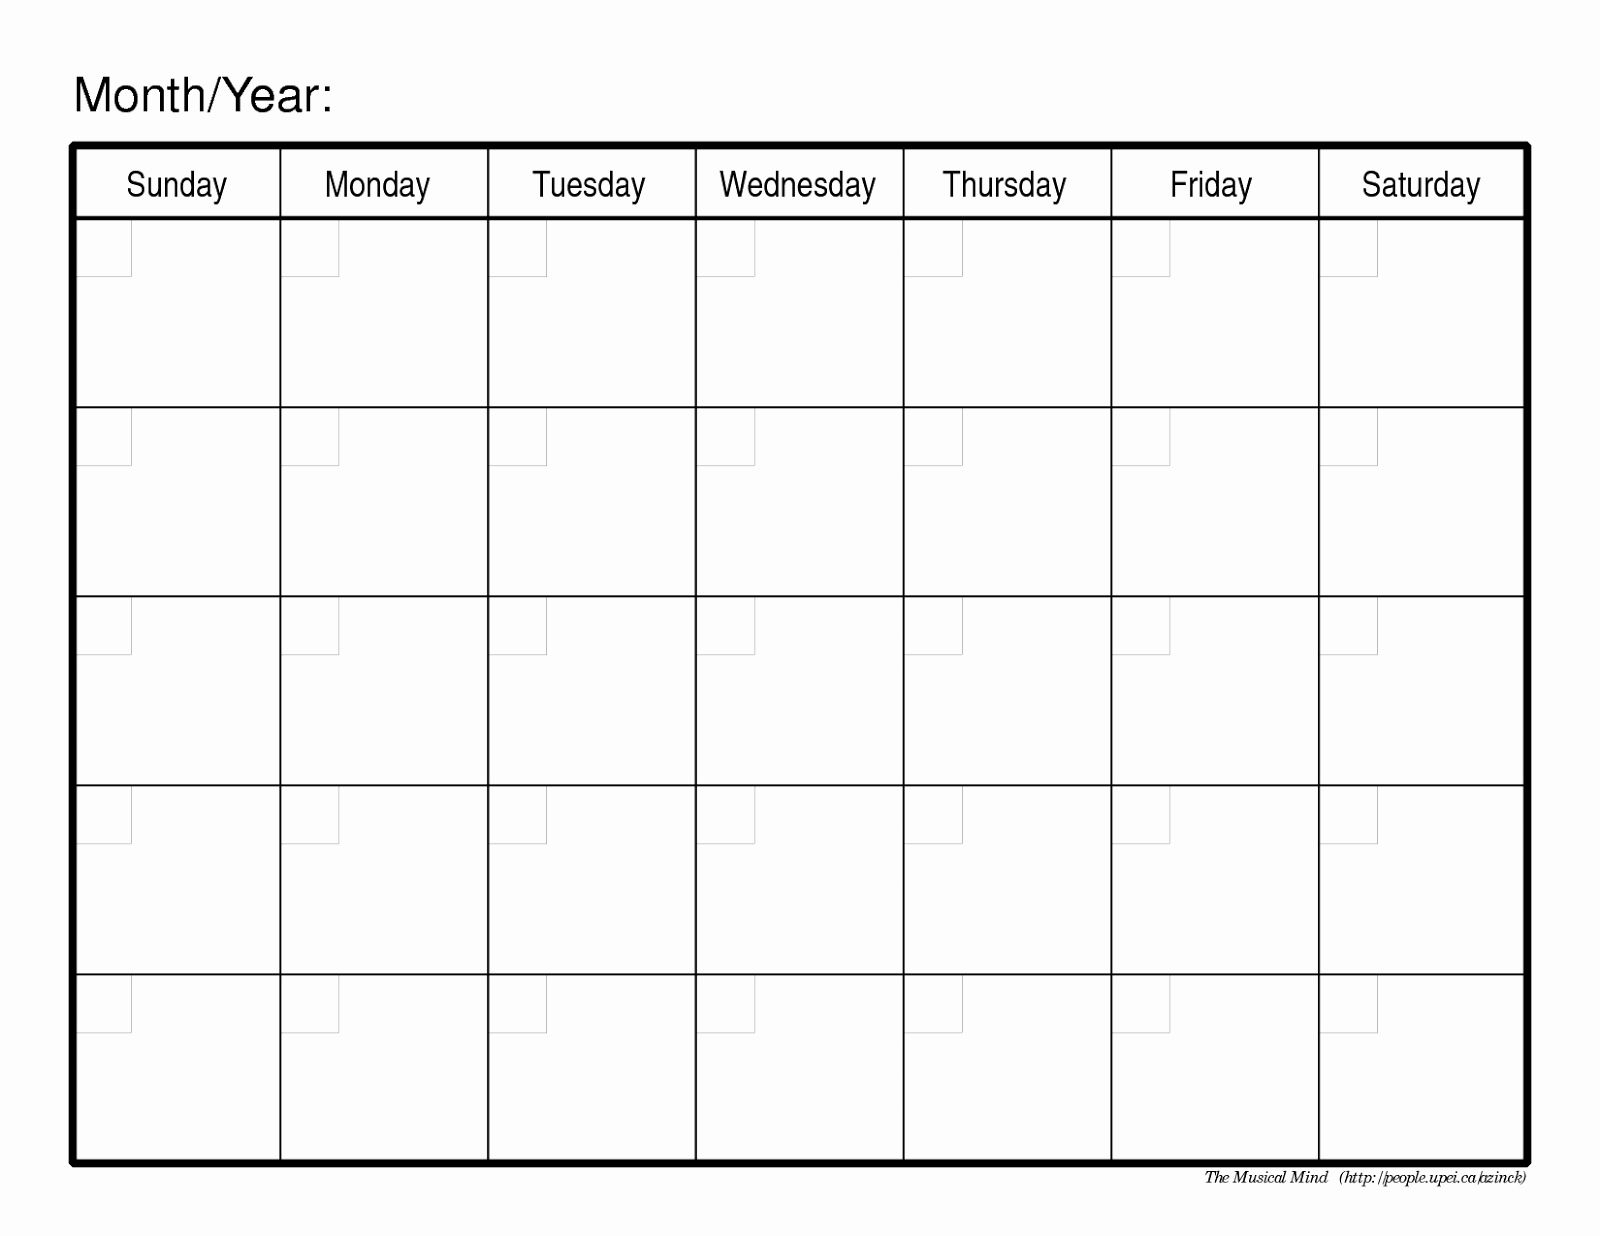 Printable Calendar Without Weekends In 2020 | Free Blank